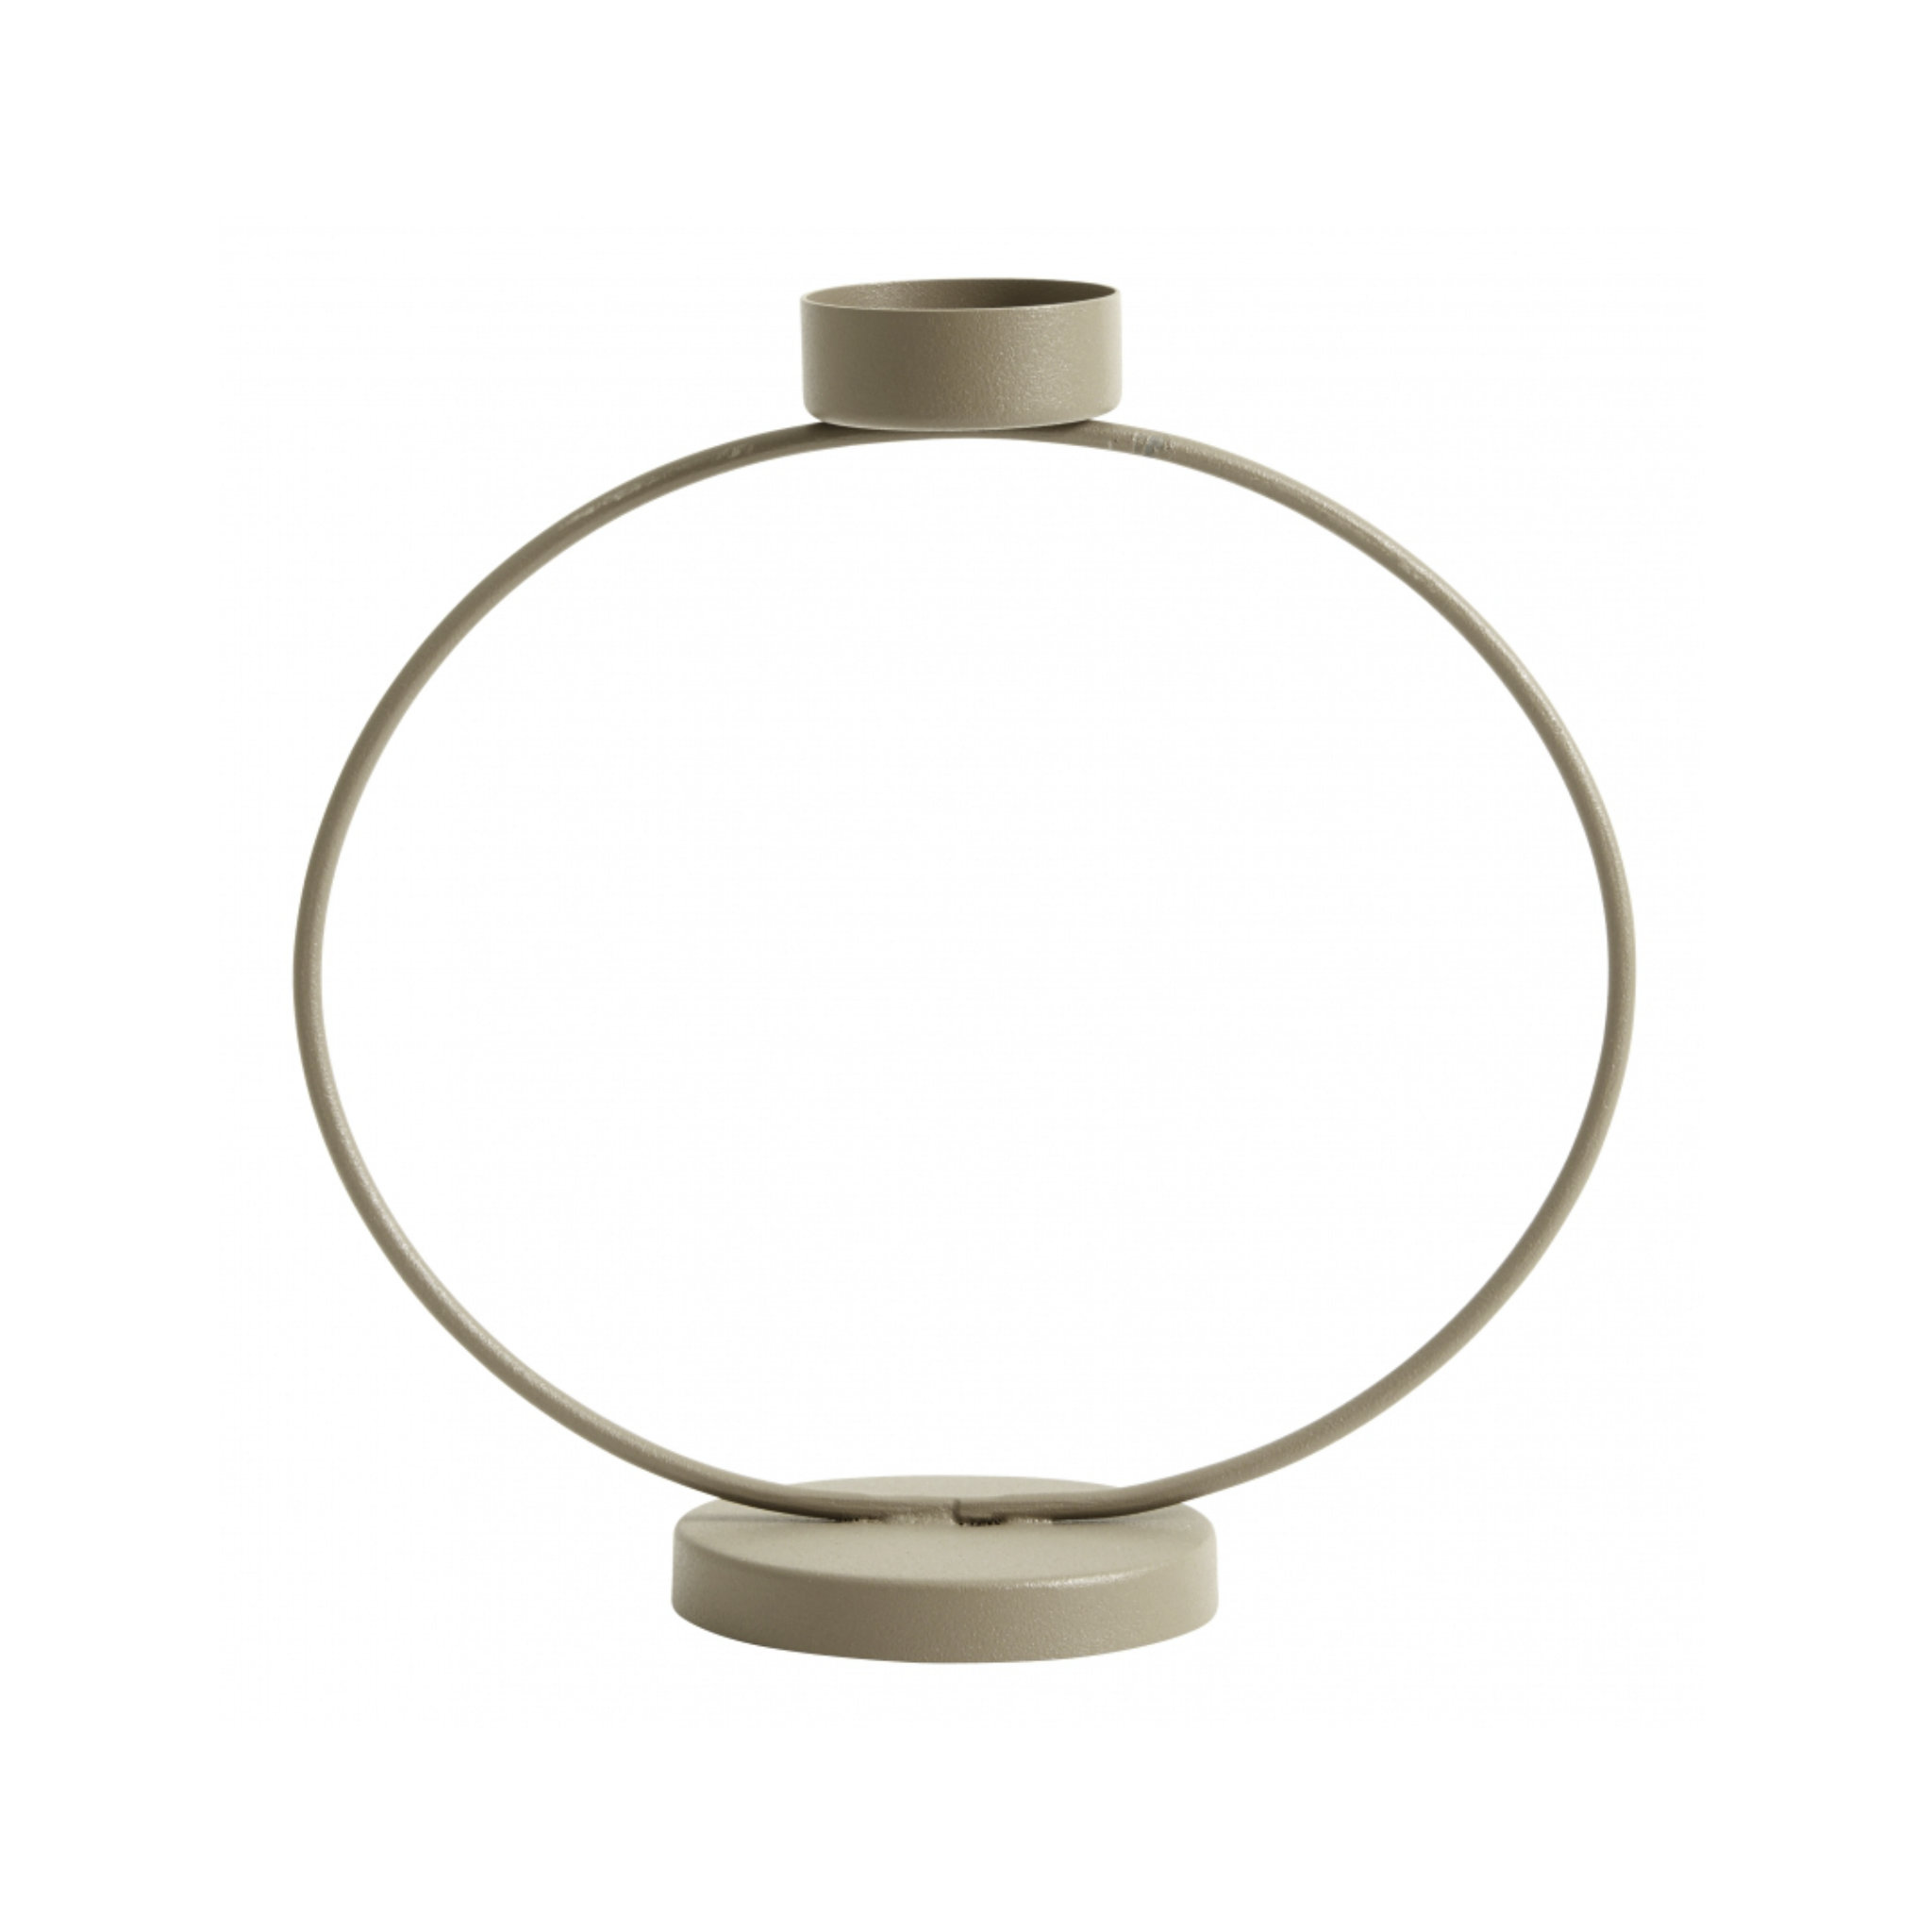 Nordal Circle Tealight Holder